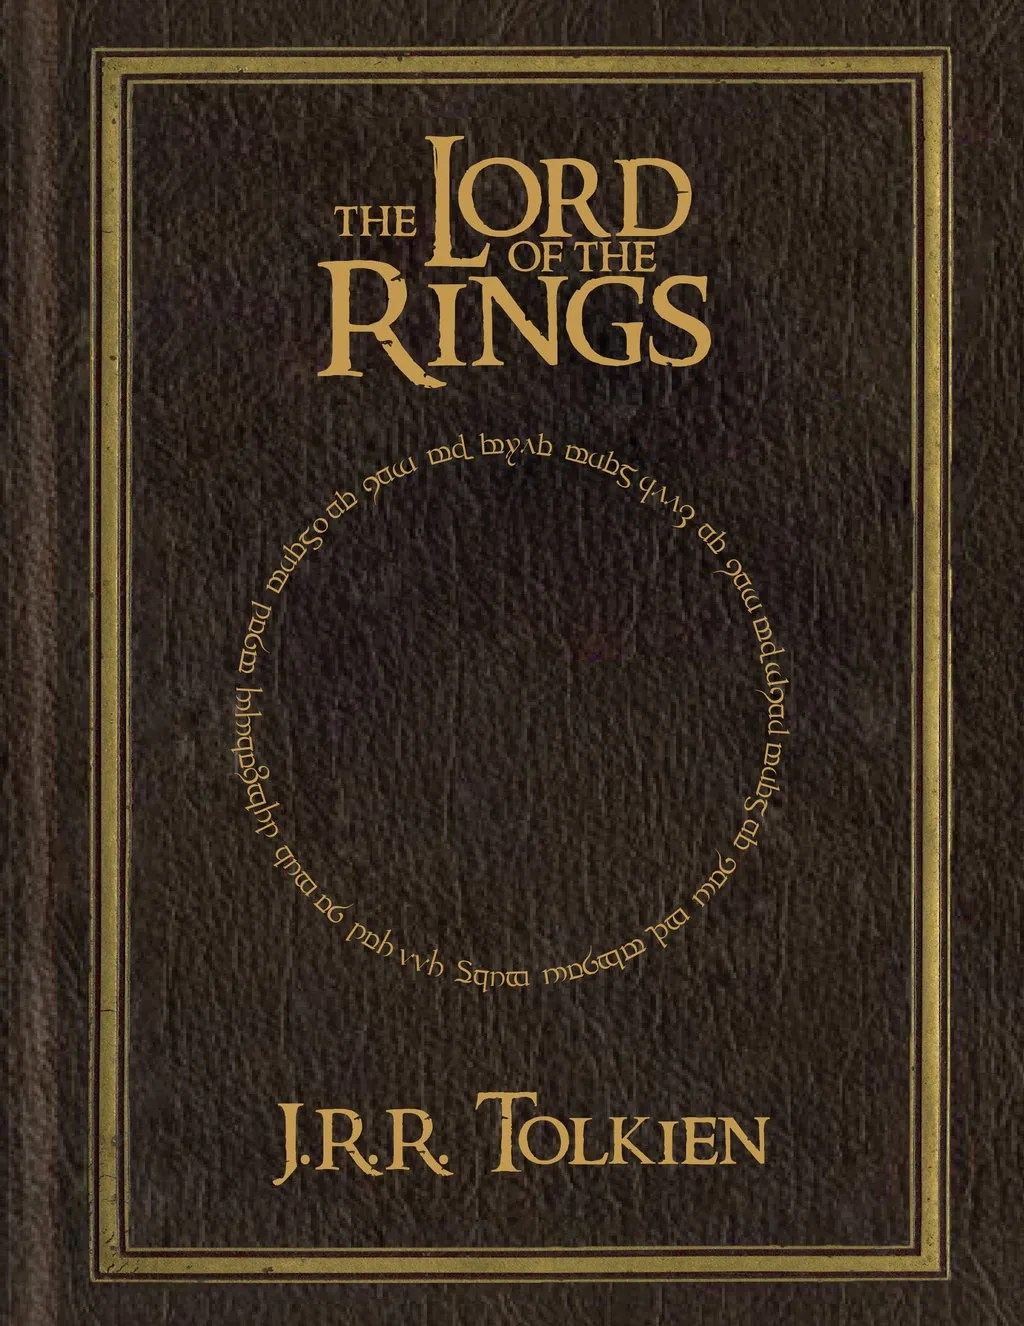 https://i2.wp.com/cdn.collider.com/wp-content/uploads/2016/07/the-lord-of-the-rings-book-cover.jpg